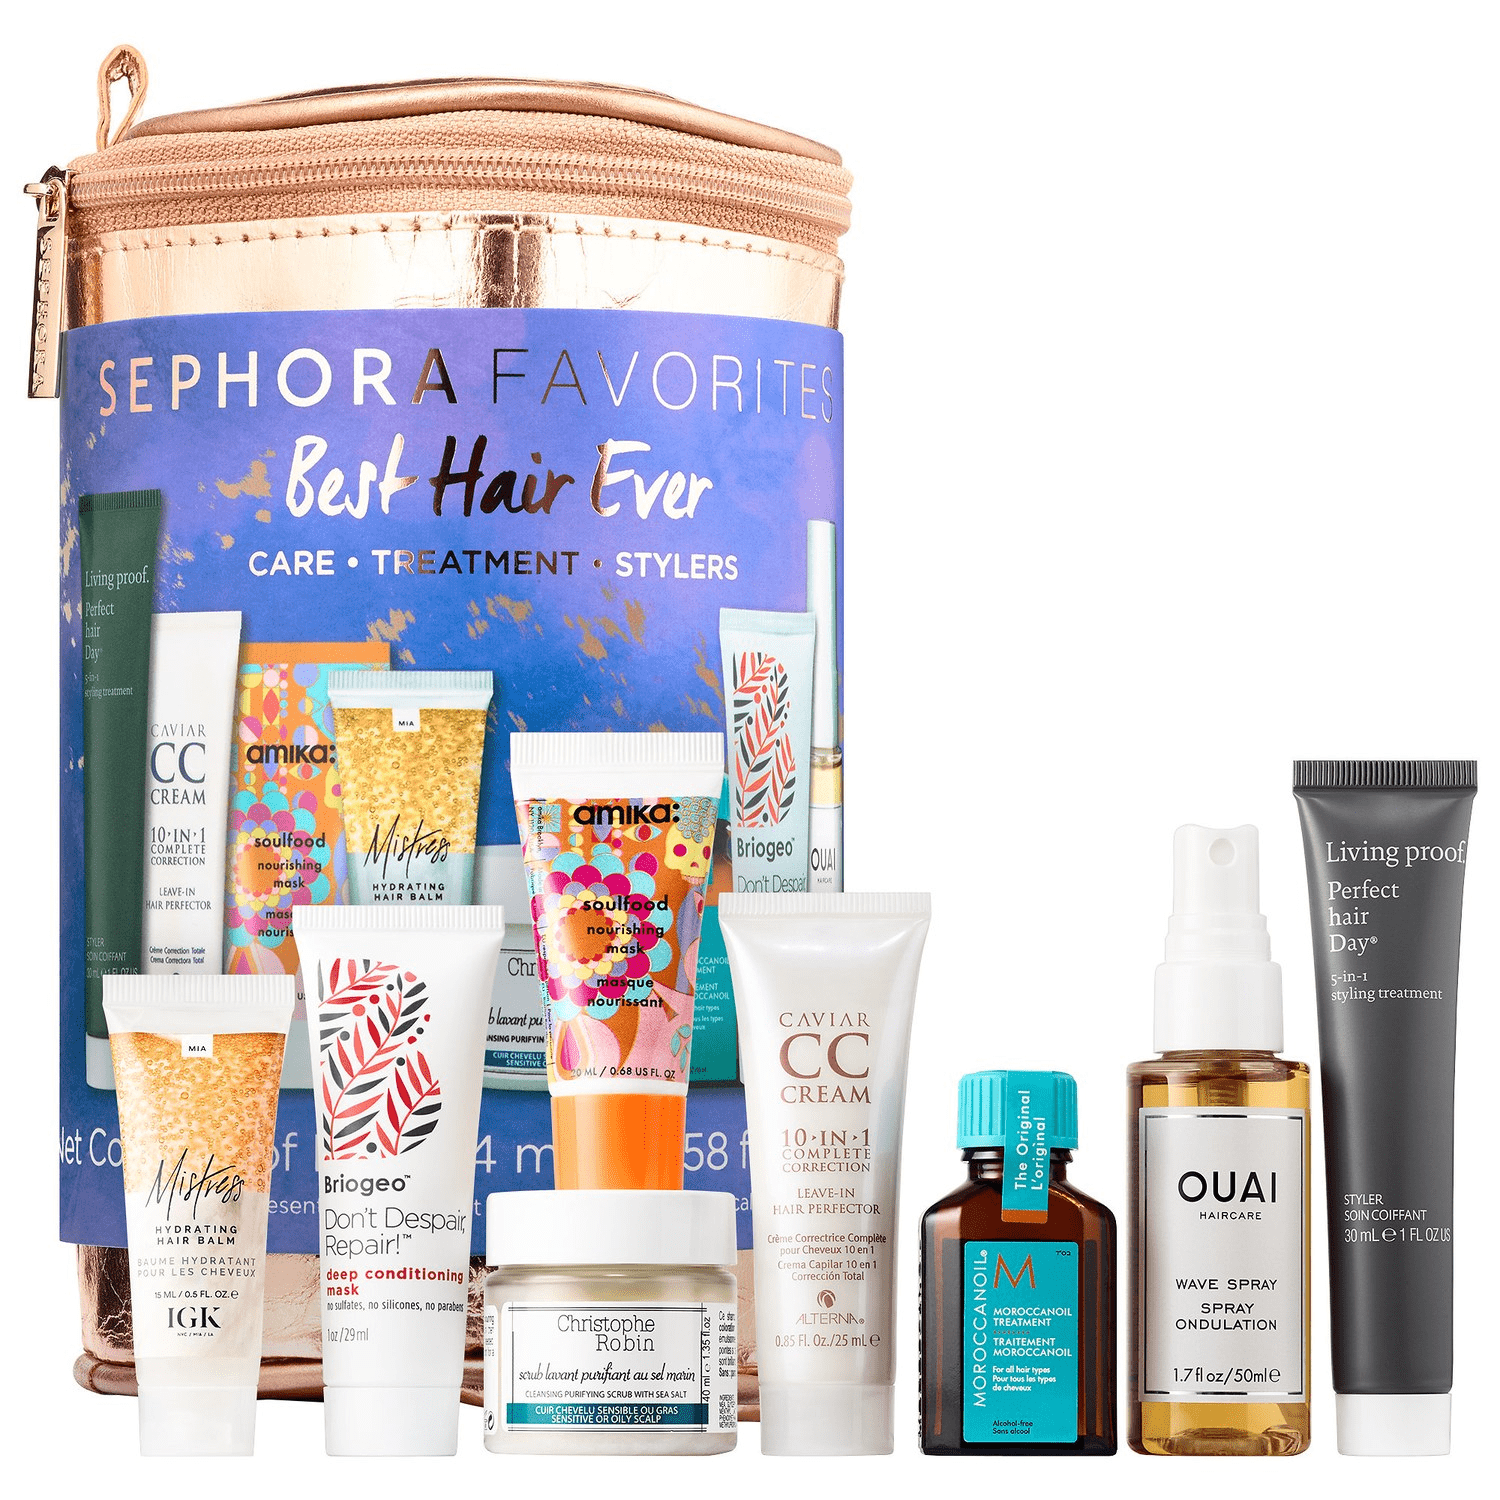 New Sephora Favorites Kits Available Now!